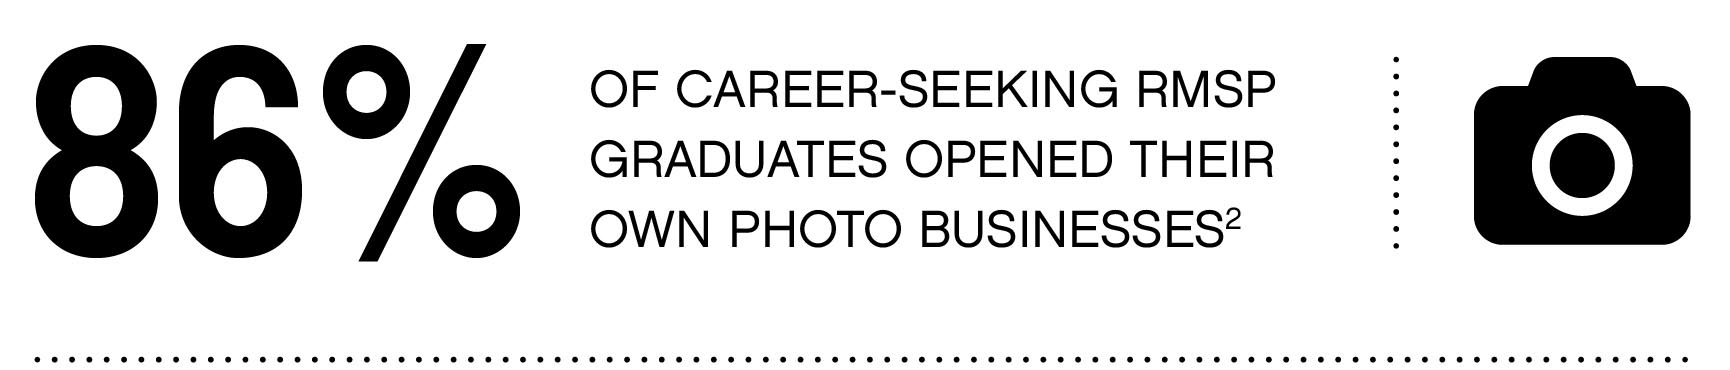 86% of career-seeking RMSP graduates opened their own photo businesses